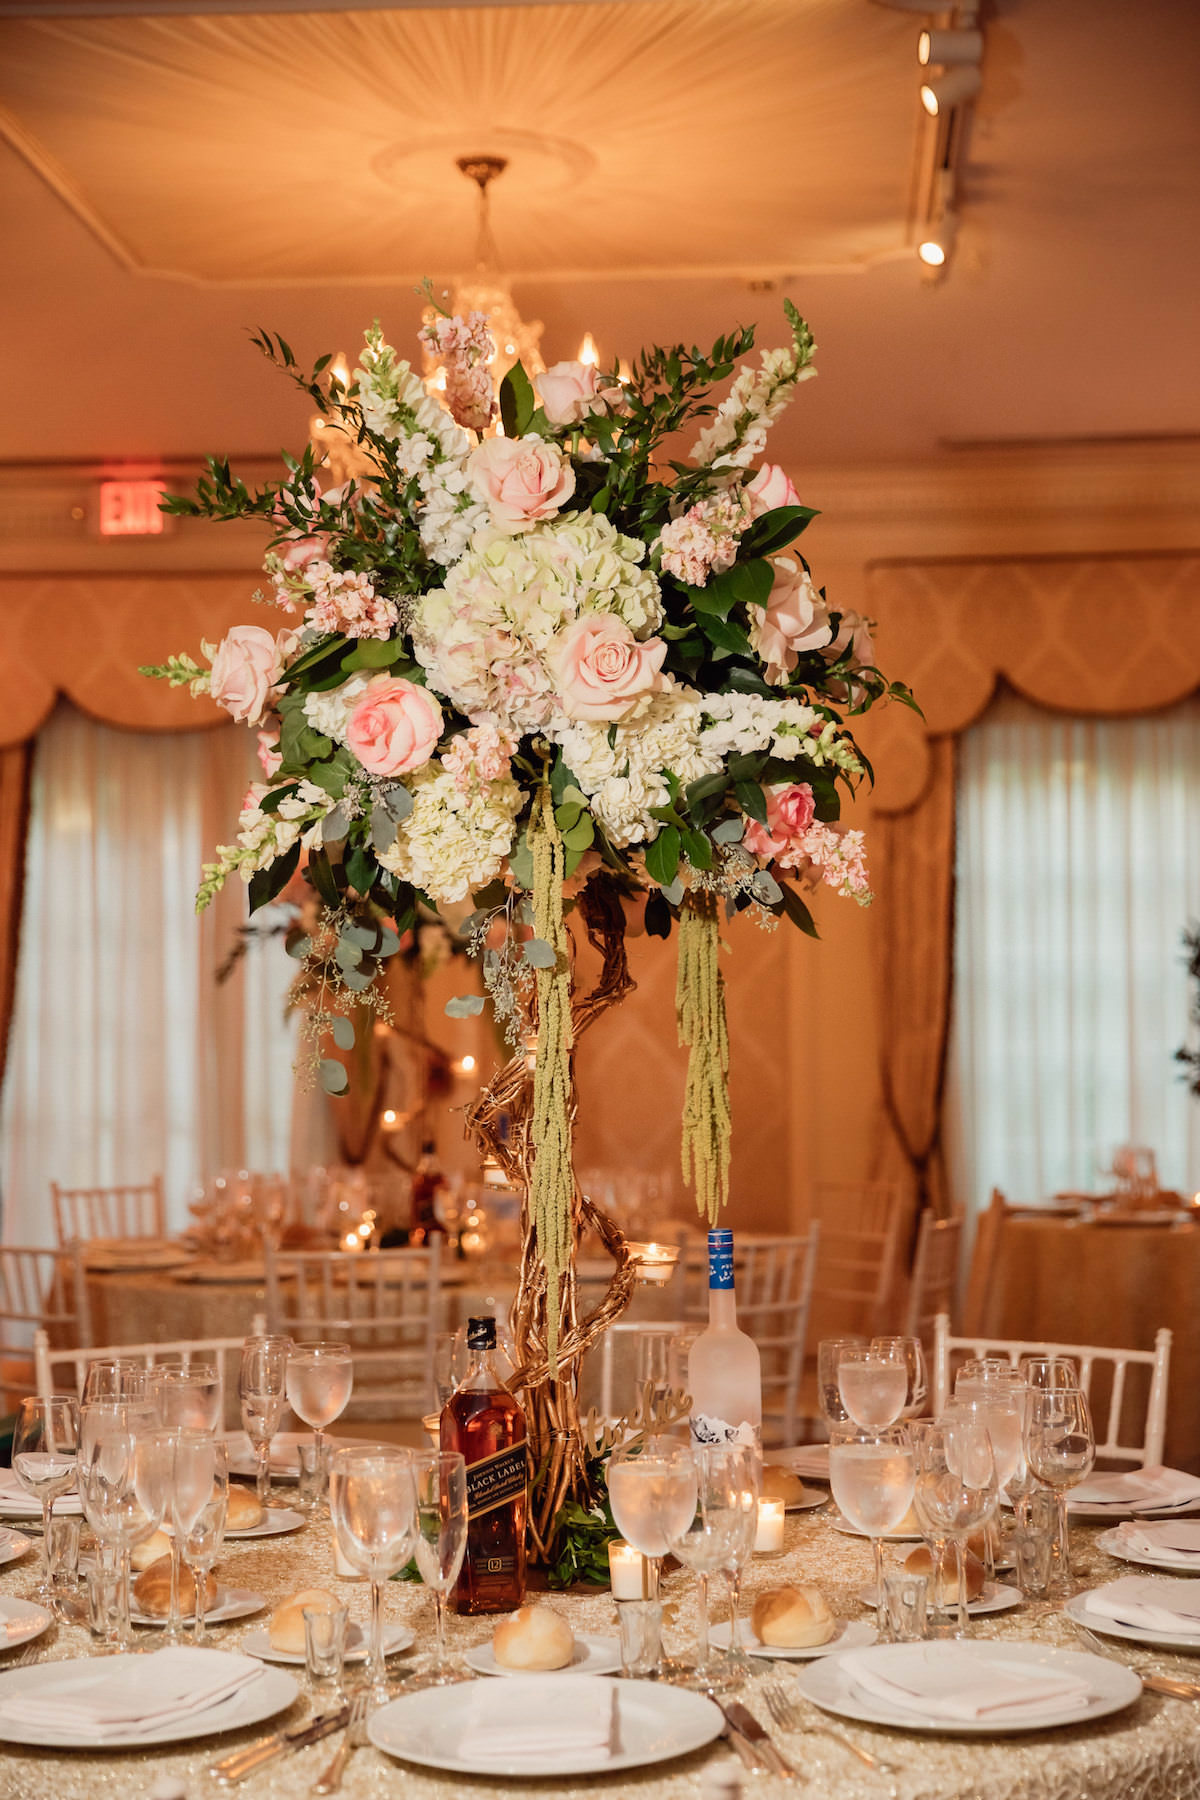 Glamorous tall wedding centerpiece - Photography: Charming Images